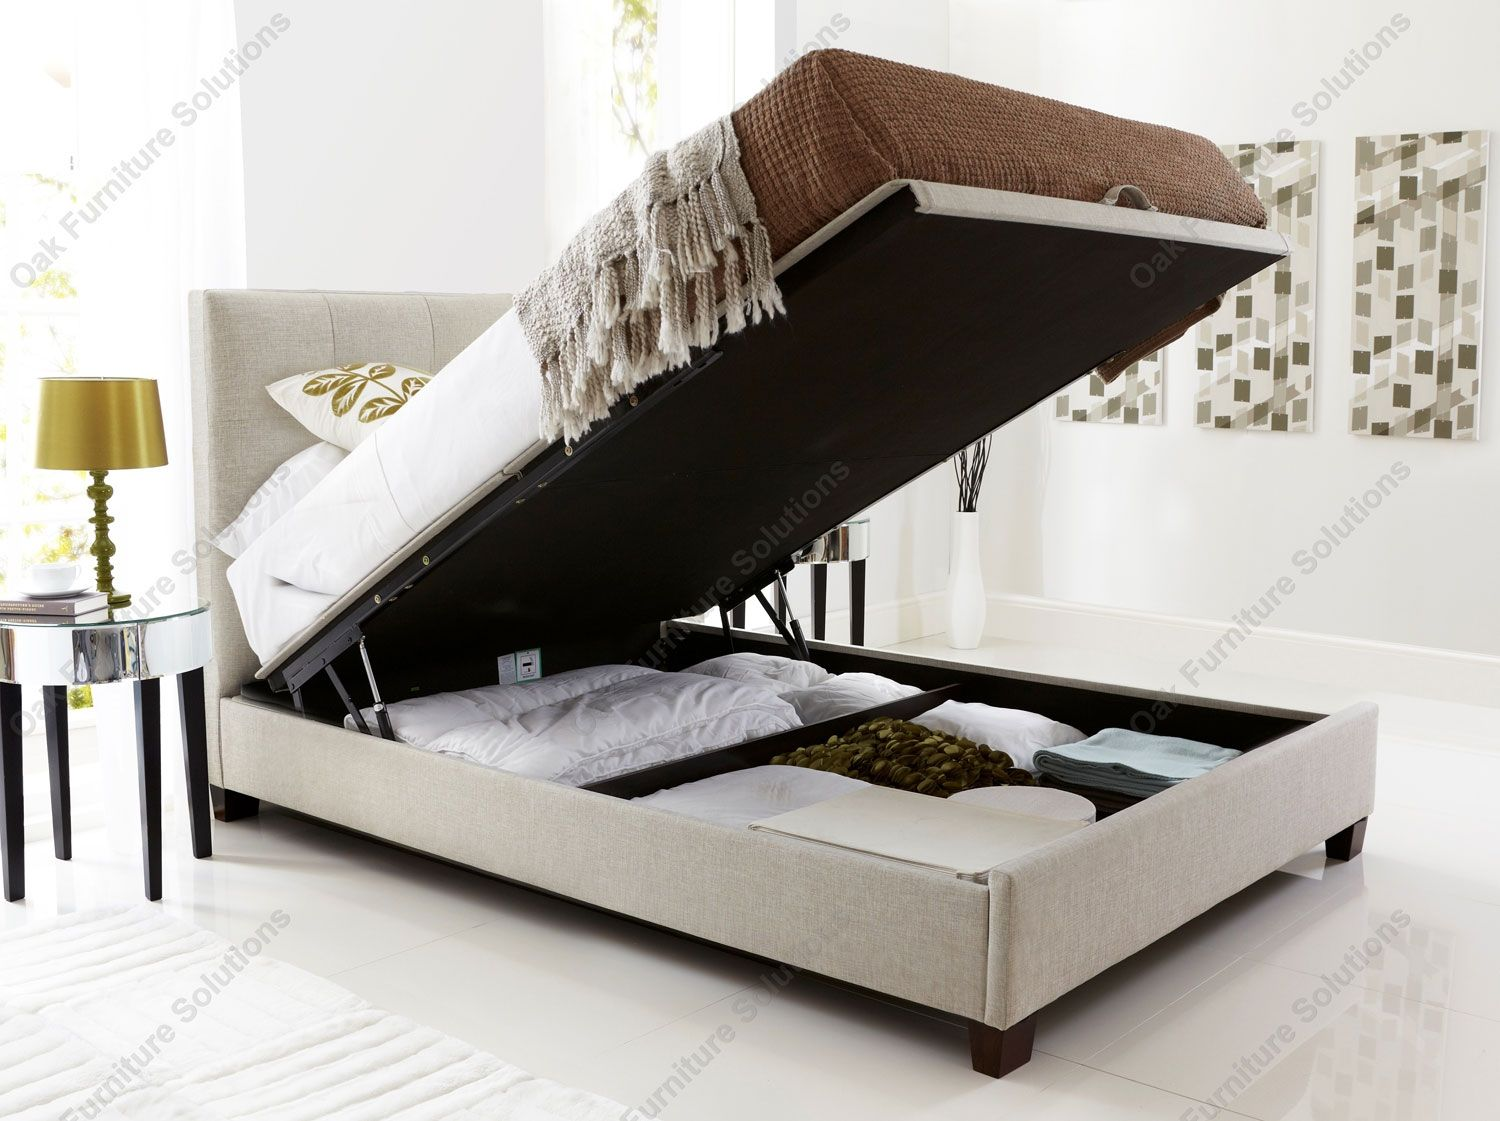 kaydian walkworth oatmeal fabric ottoman storage bed double king size or super king size double bed - King Size Storage Bed Frame